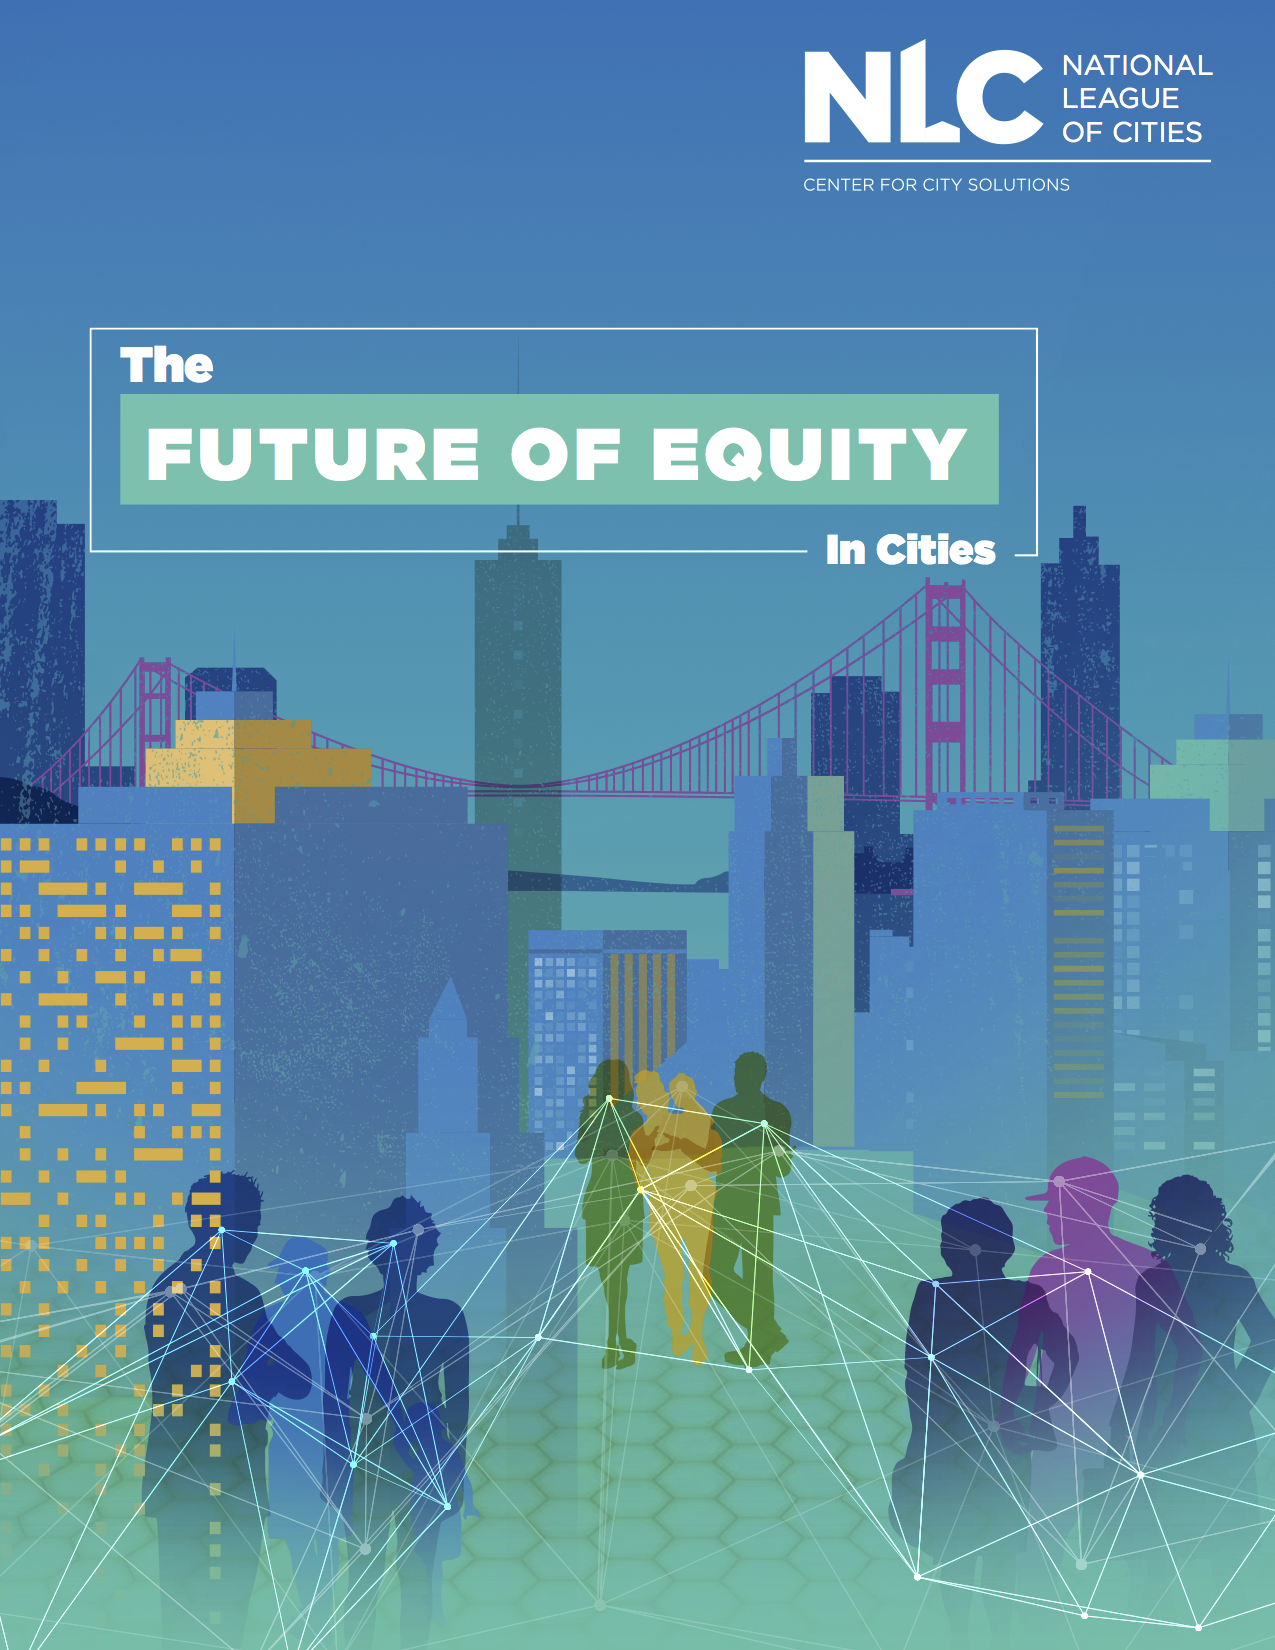 The Future of Equity in Cities